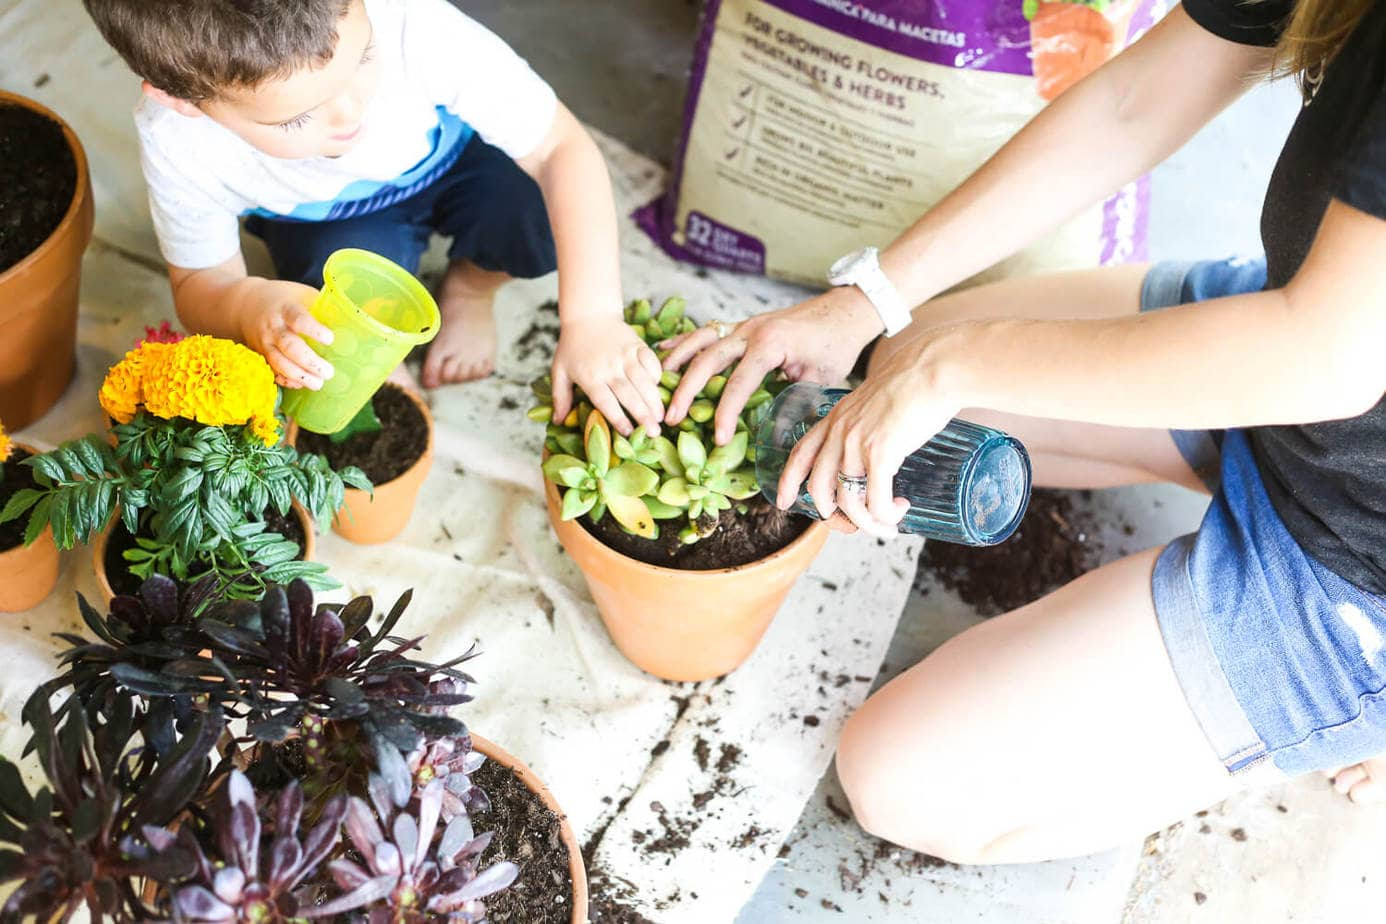 Planting with a toddler